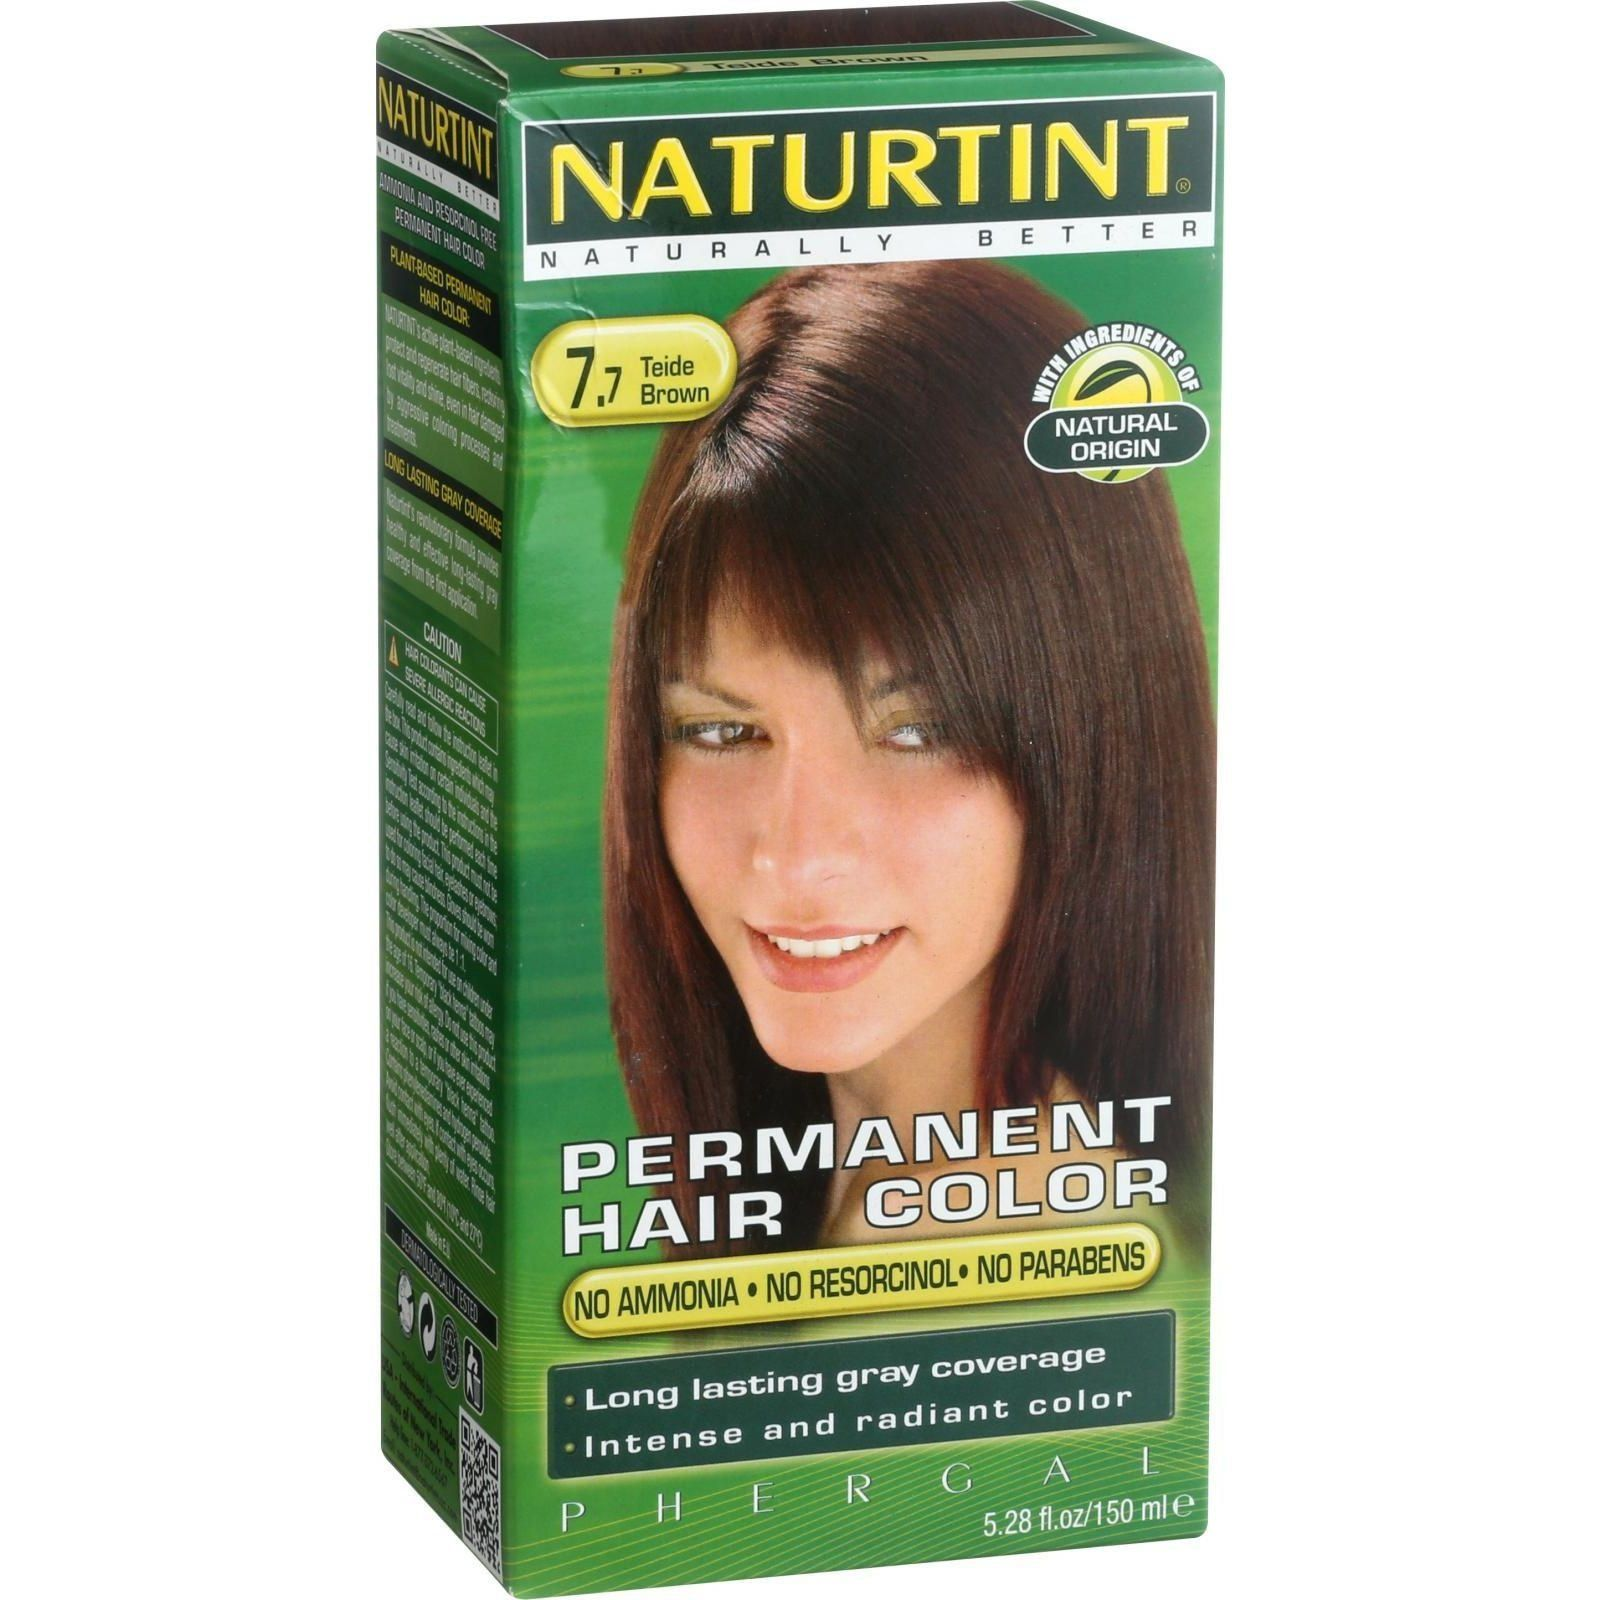 Naturtint Hair Color Permanent I 7 77 Hair Color Non Permanent Hair Color Permanent Hair Color